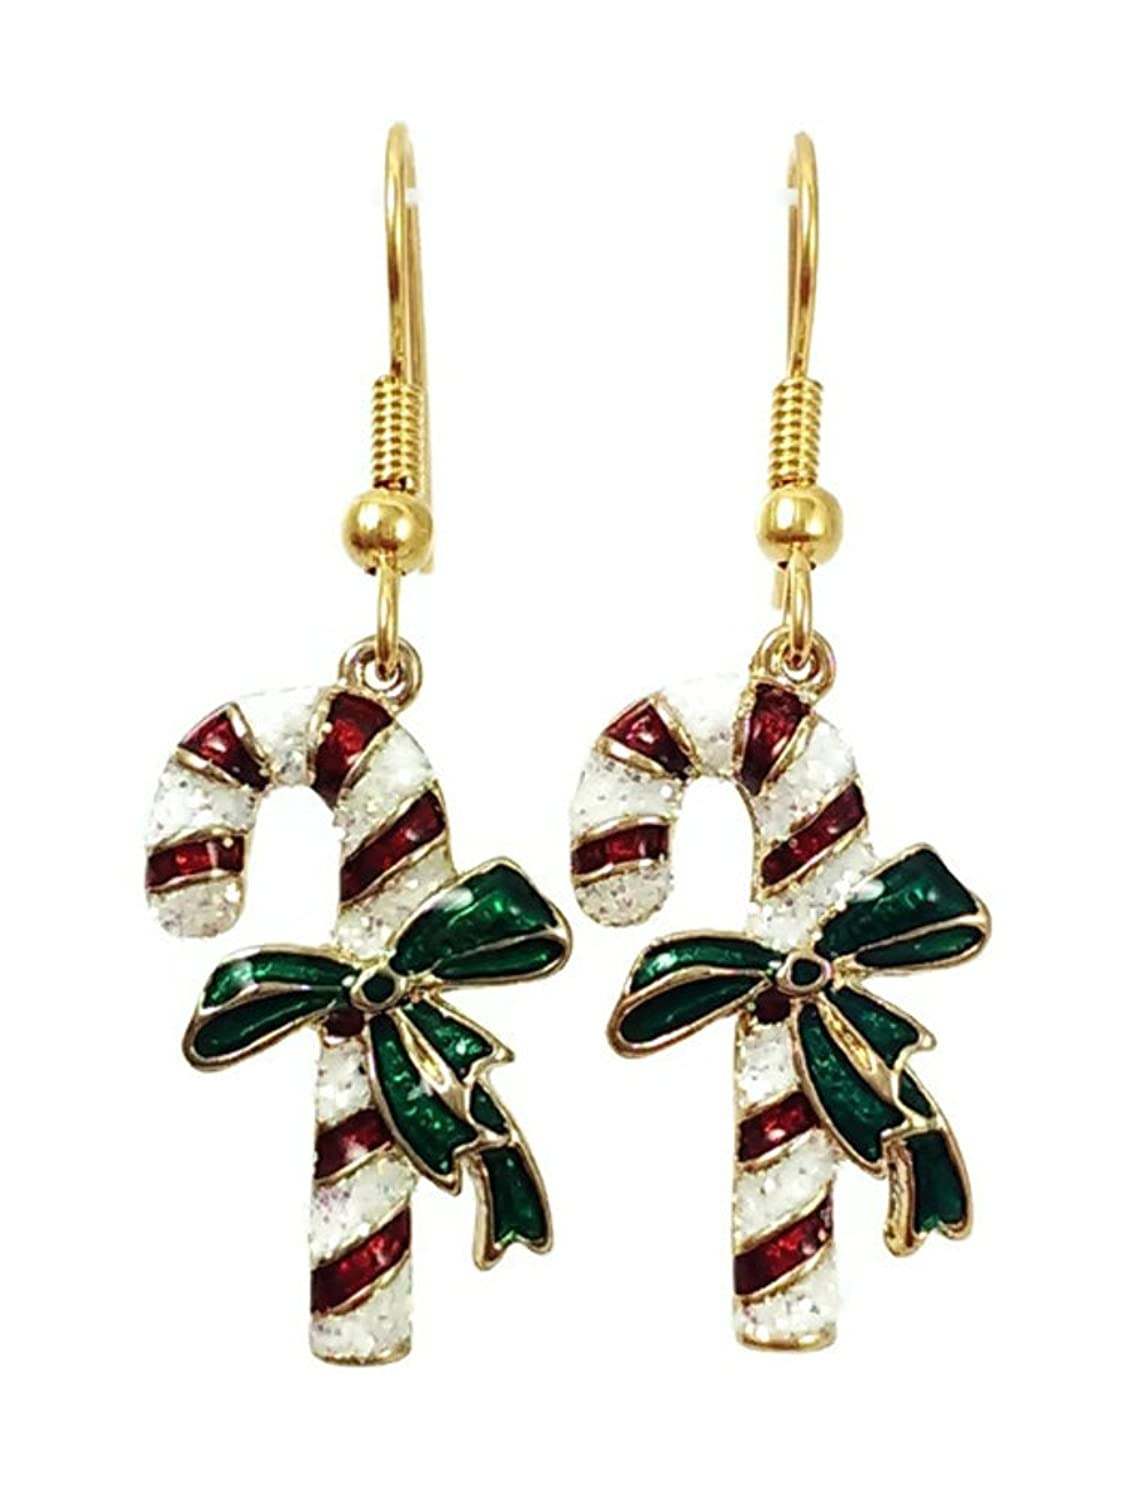 Stainless Steel Dangle Earrings Christmas Candy Cane Gold Tone